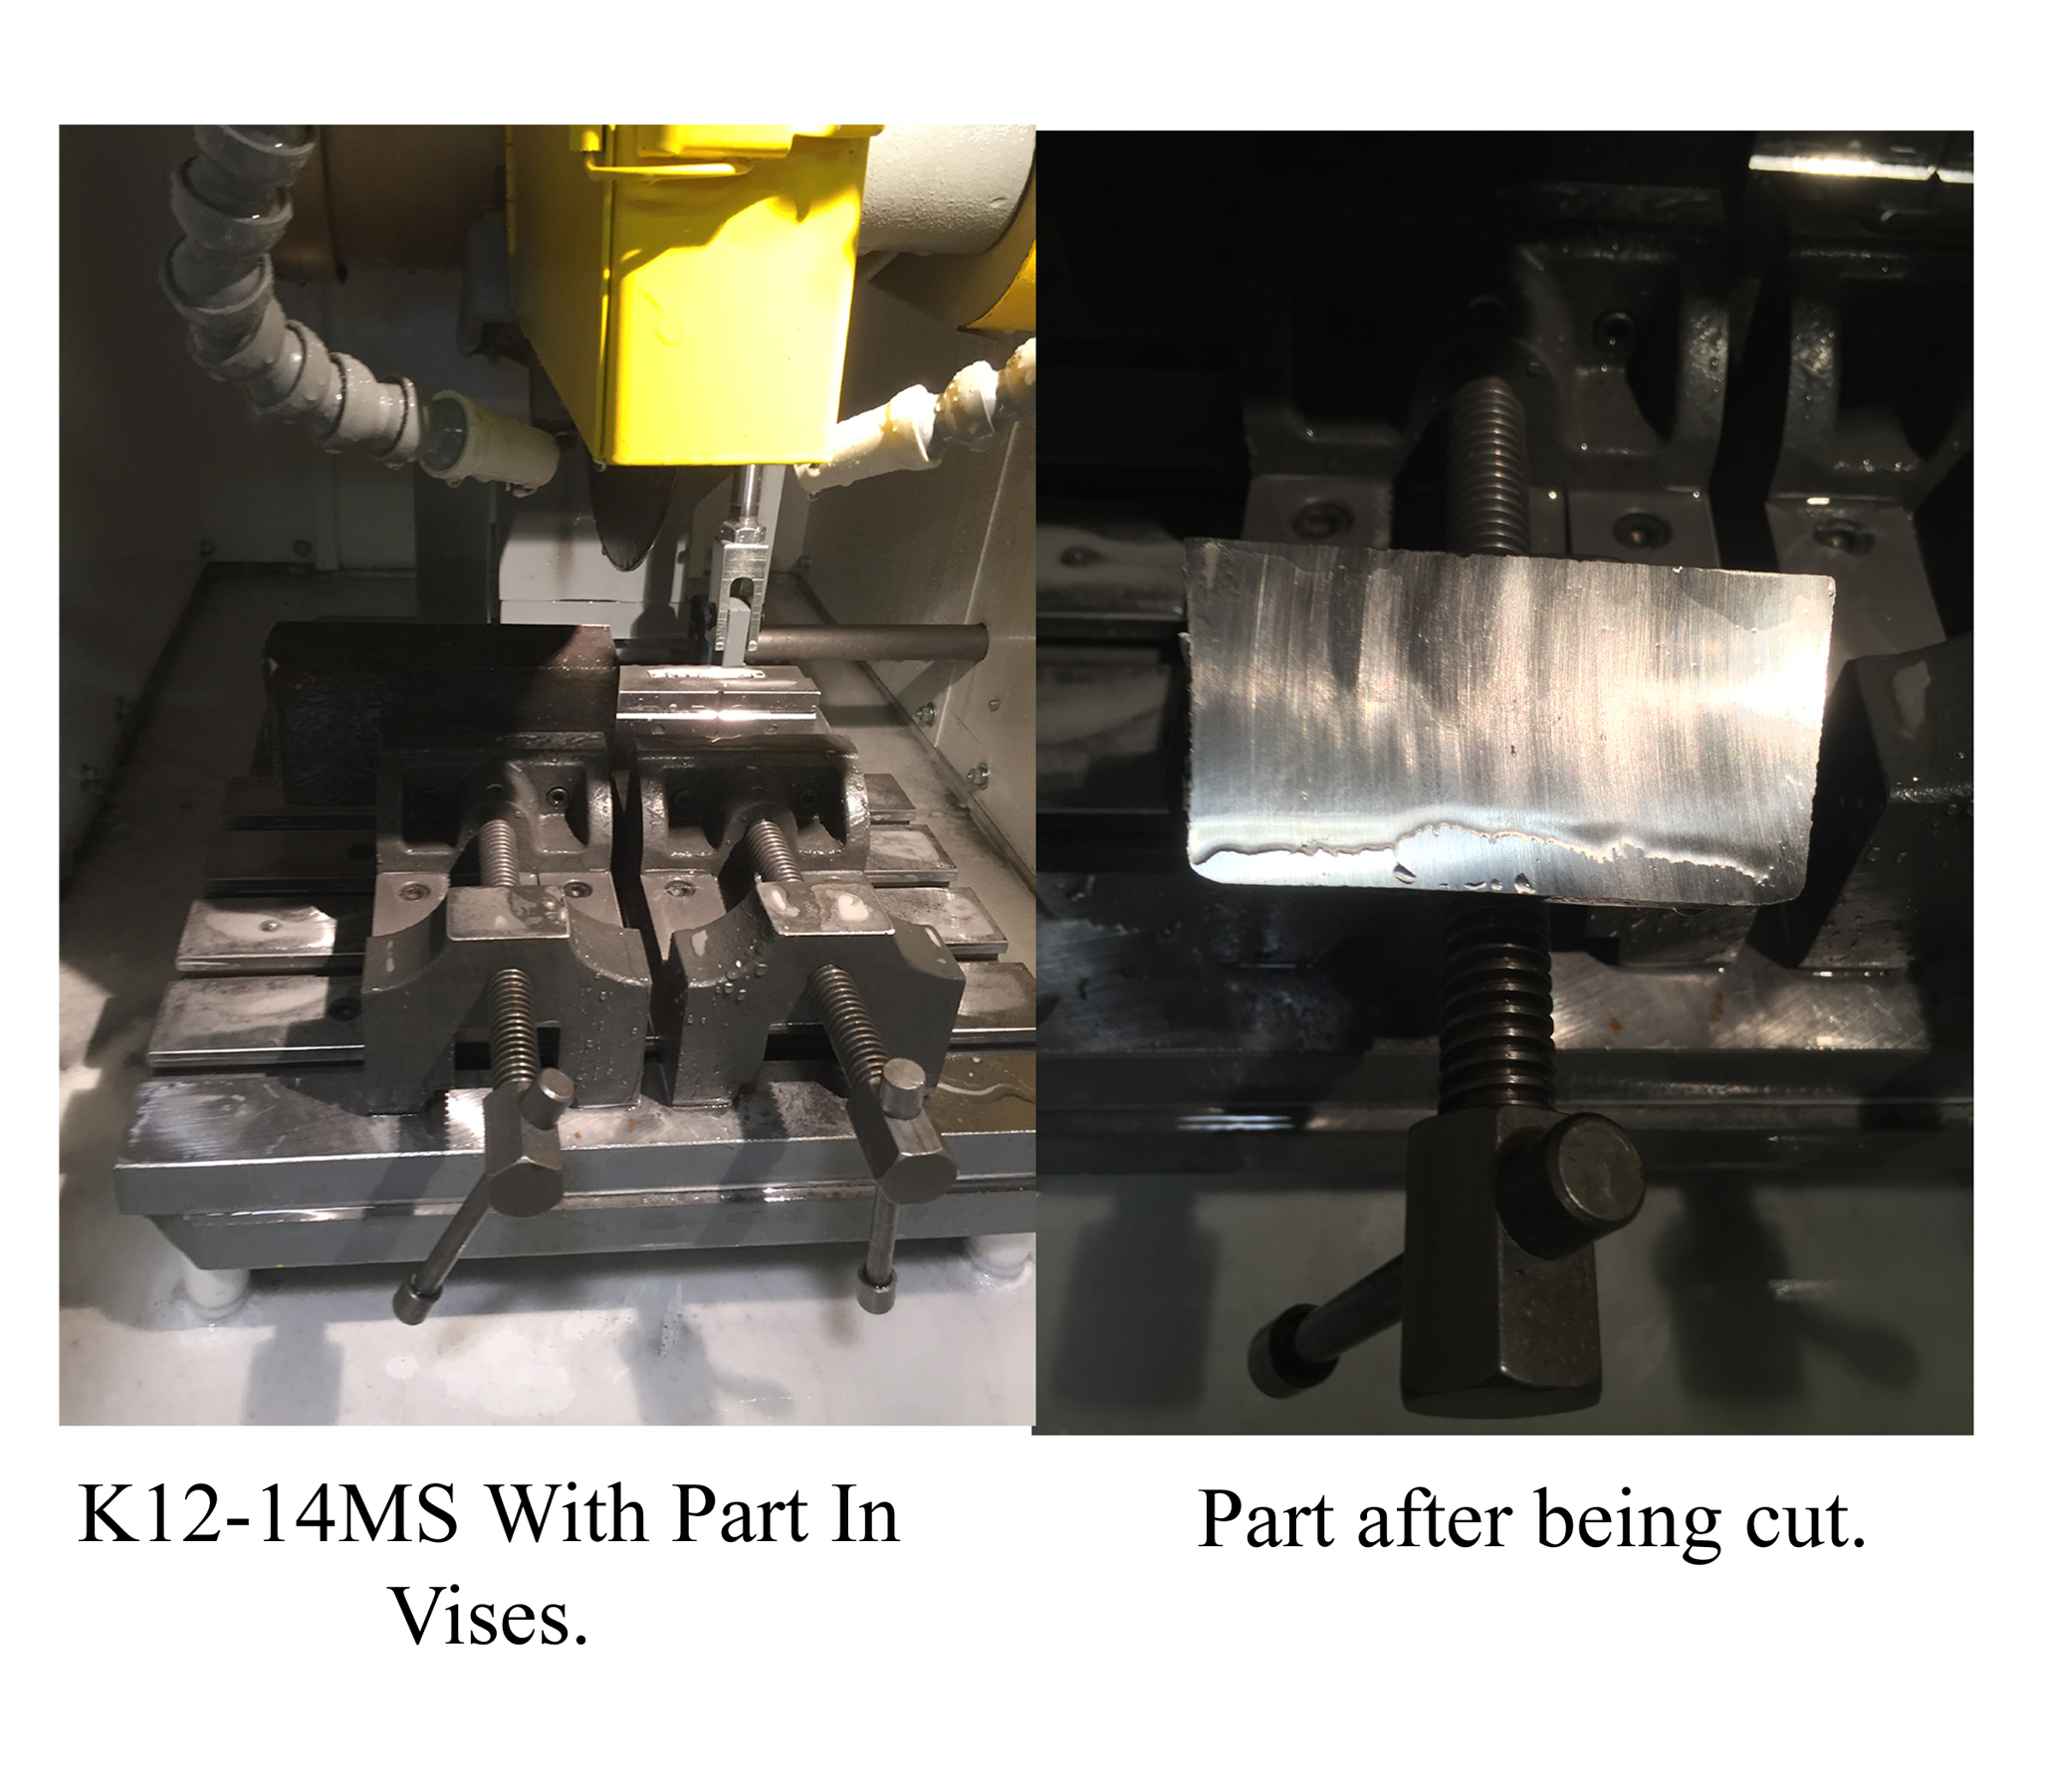 K12-14MS Test Cuts, Kalamazoo Industries, Metallurgical Sectioning Saw, Abrasive Saws